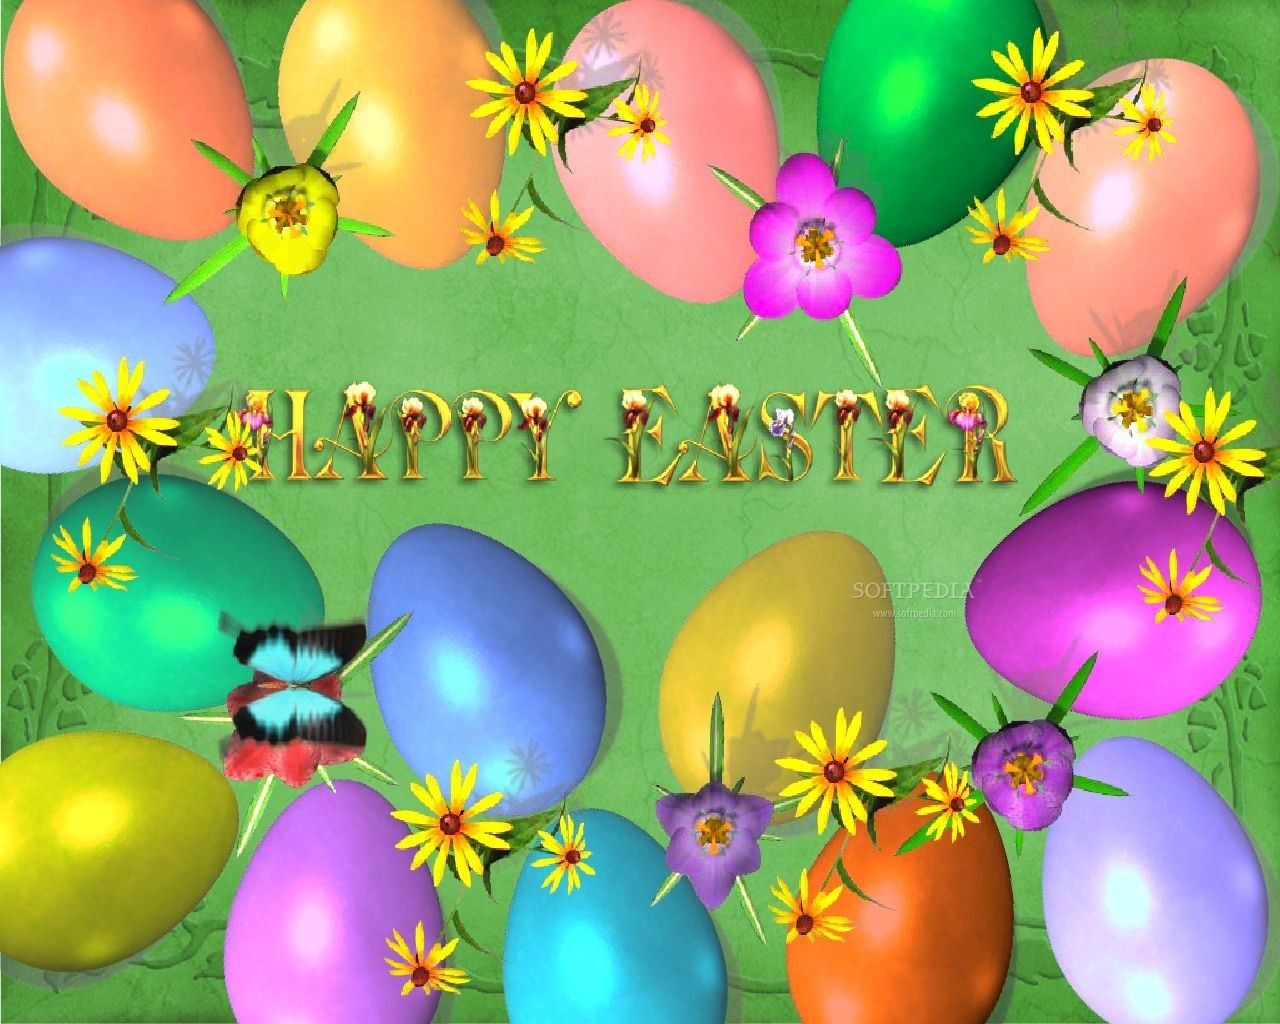 Freeeasterwallpaper Com Free Easter Wallpaper Backgrounds